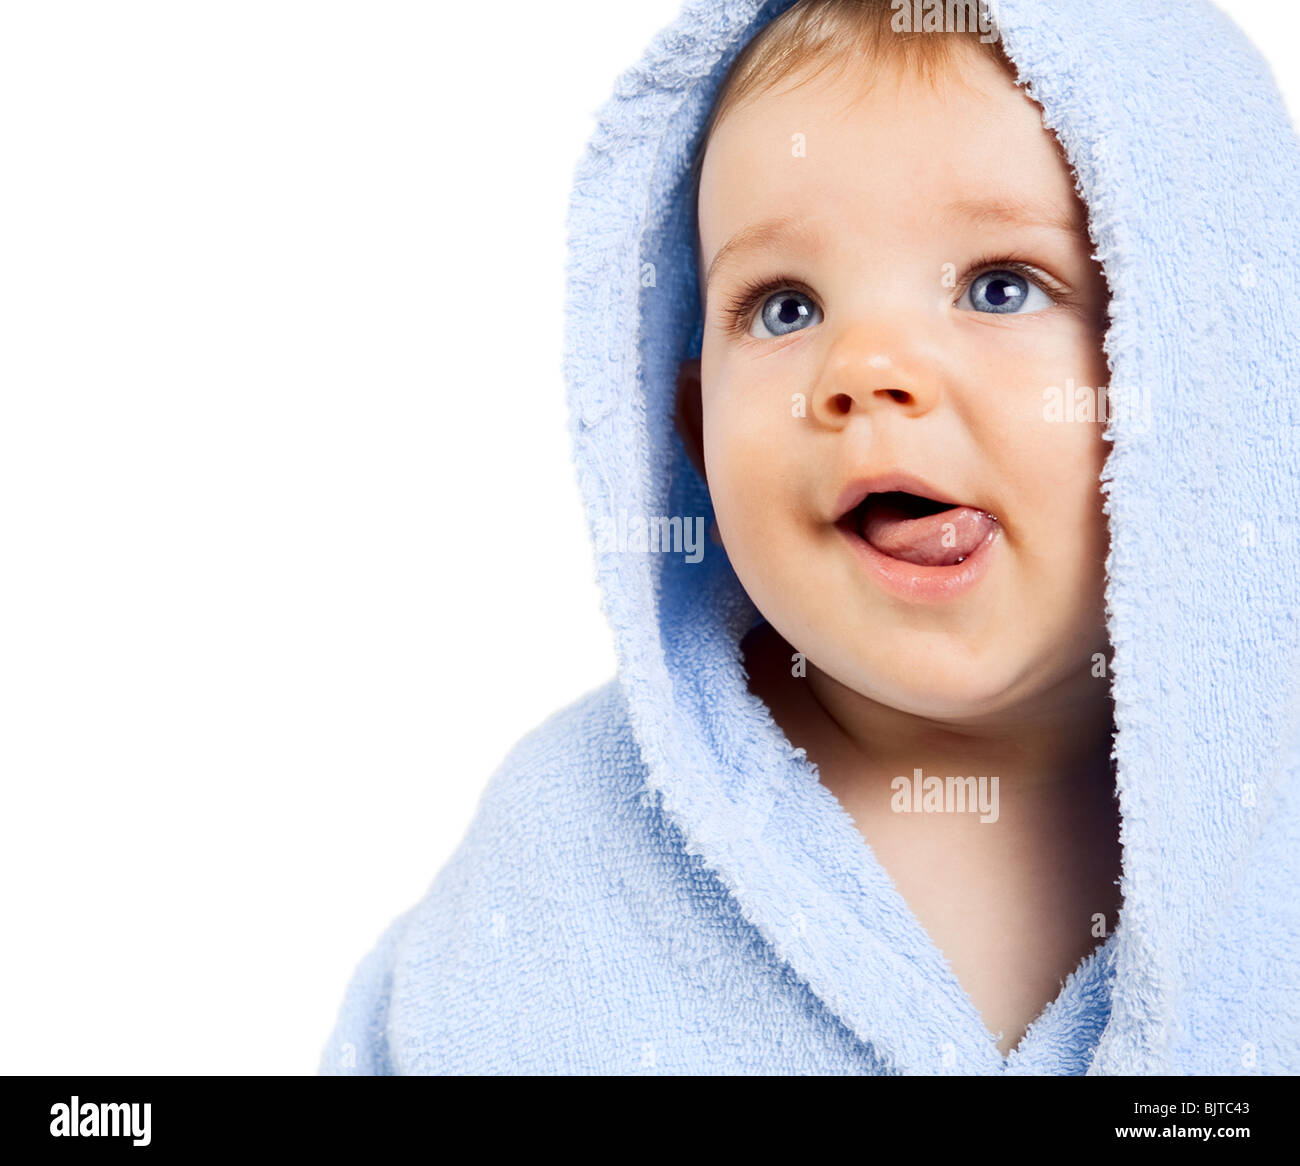 Hungry baby boy with tongue out isolated on white - Stock Image